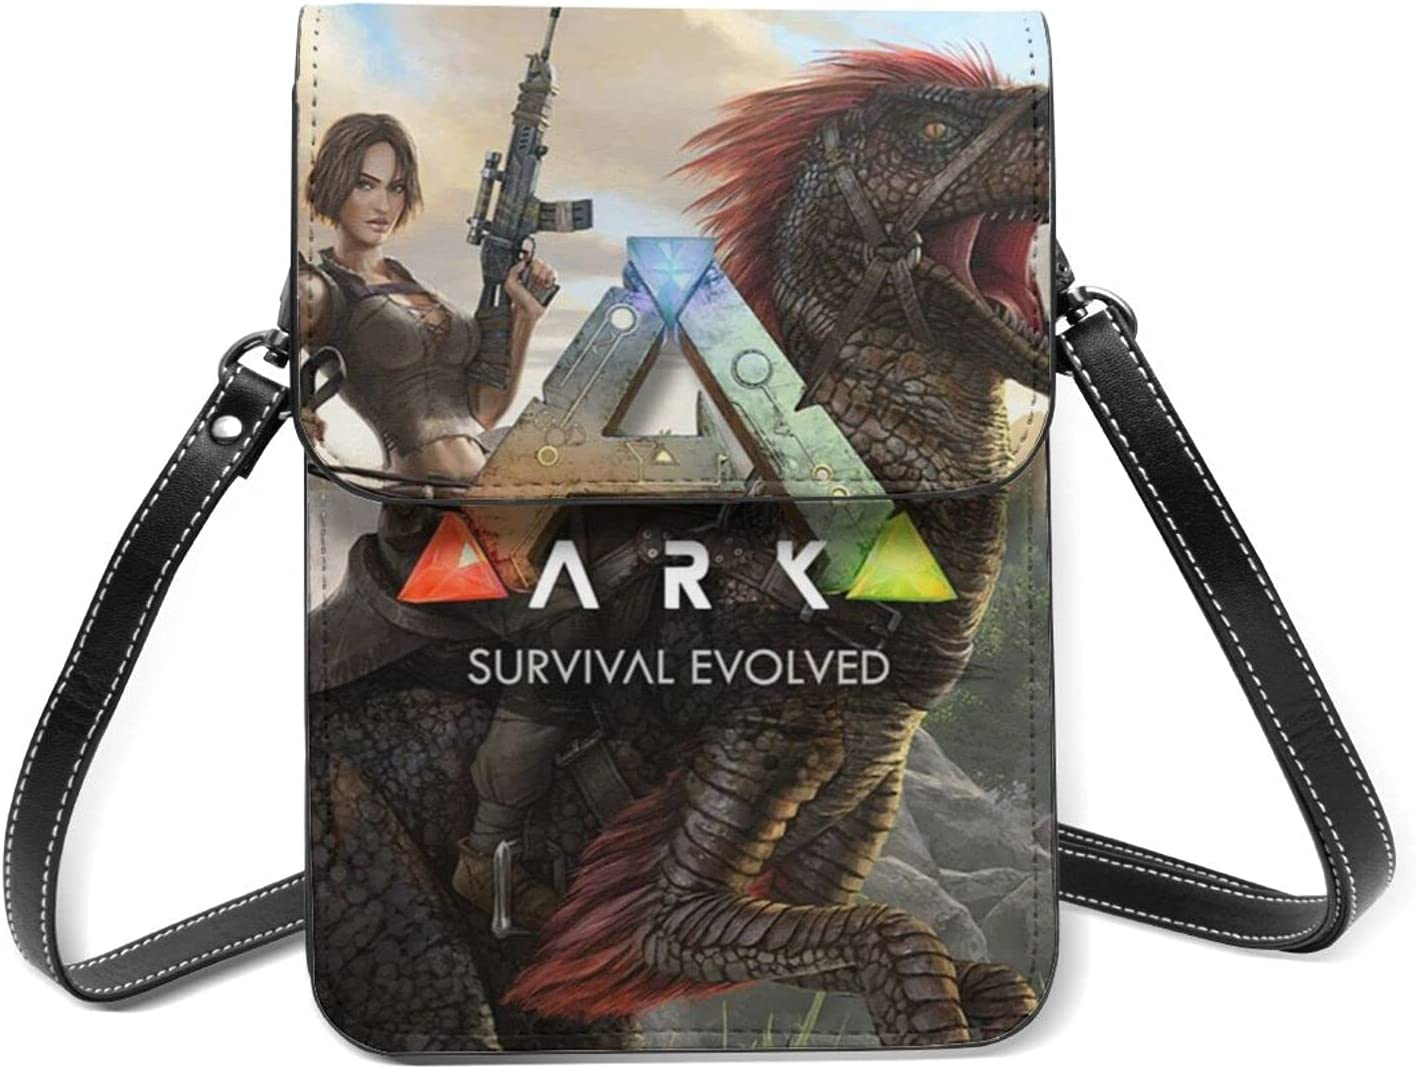 Survival Evolved Crossbody Cell Phone Bags 35% OFF Bag Should Max 42% OFF with Purse